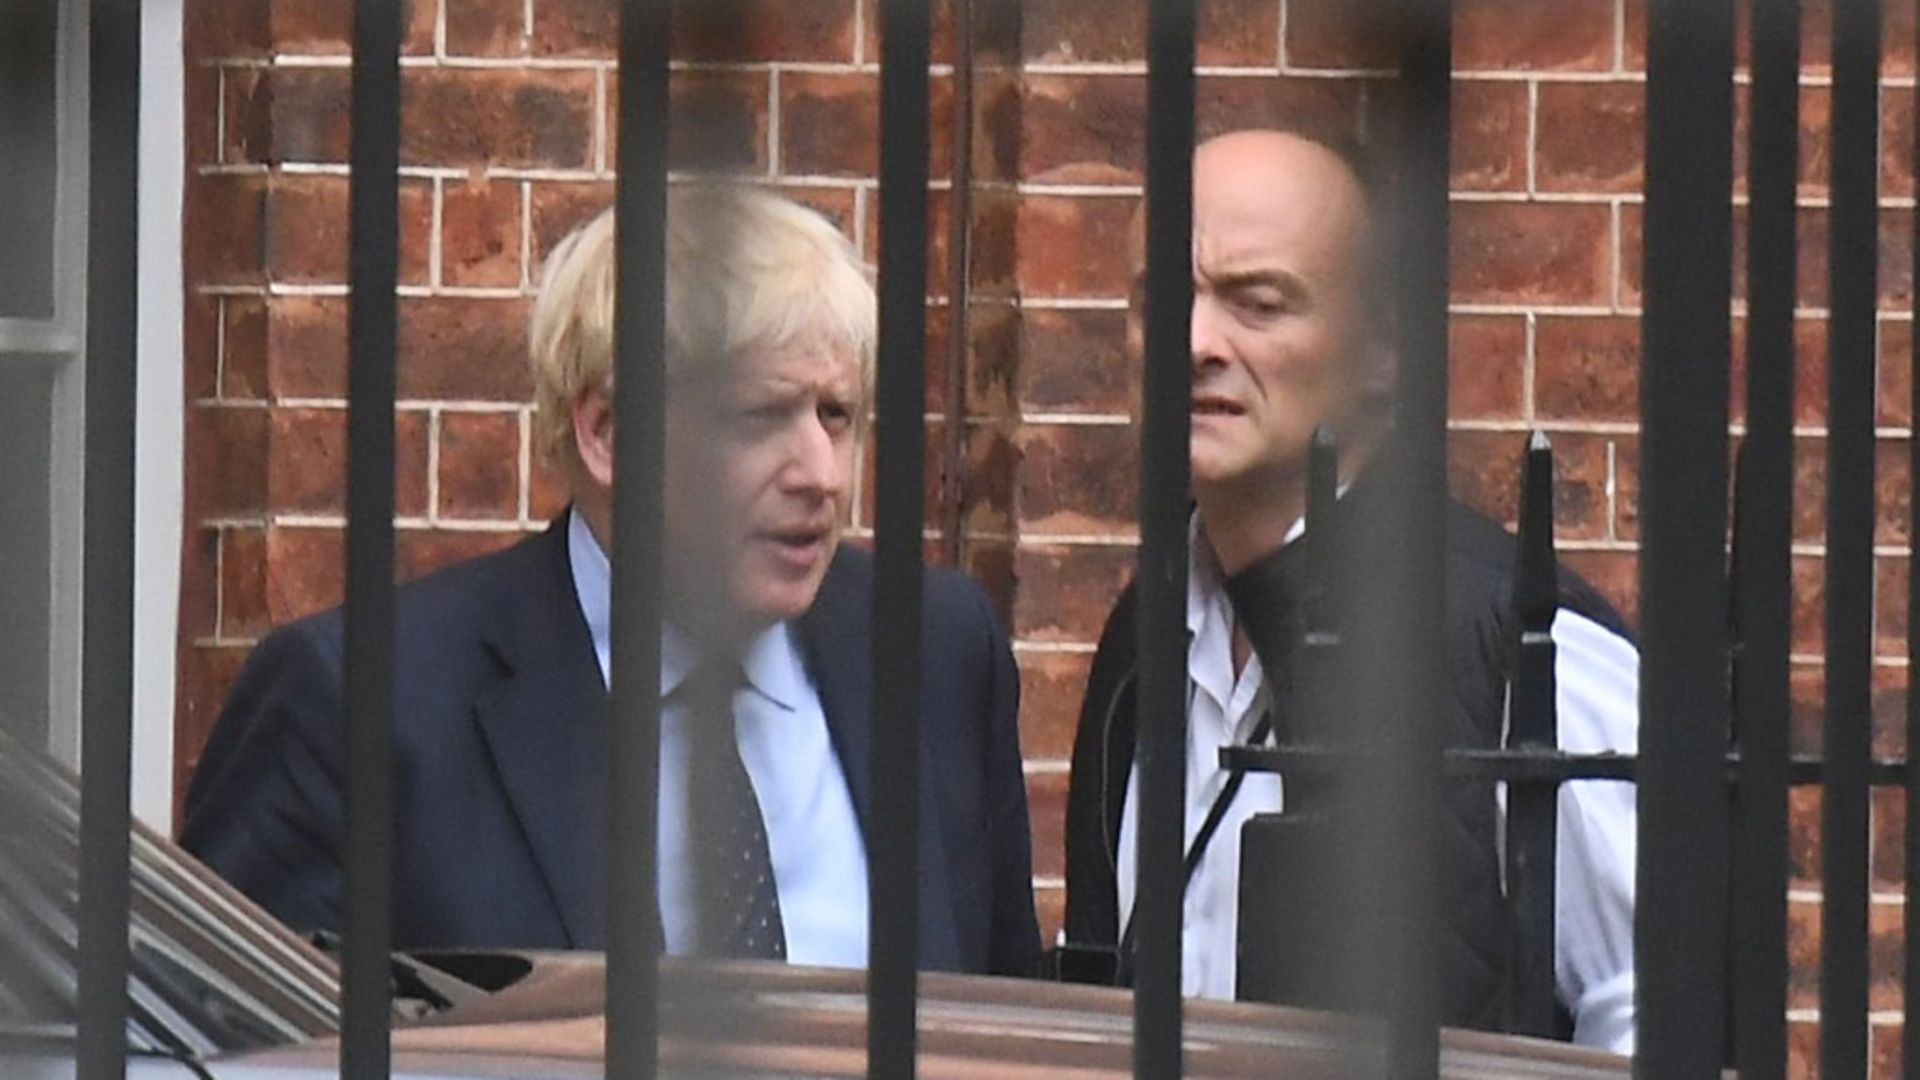 Prime Minister Boris Johnson with his senior aide Dominic Cummings in Downing Street - Credit: PA